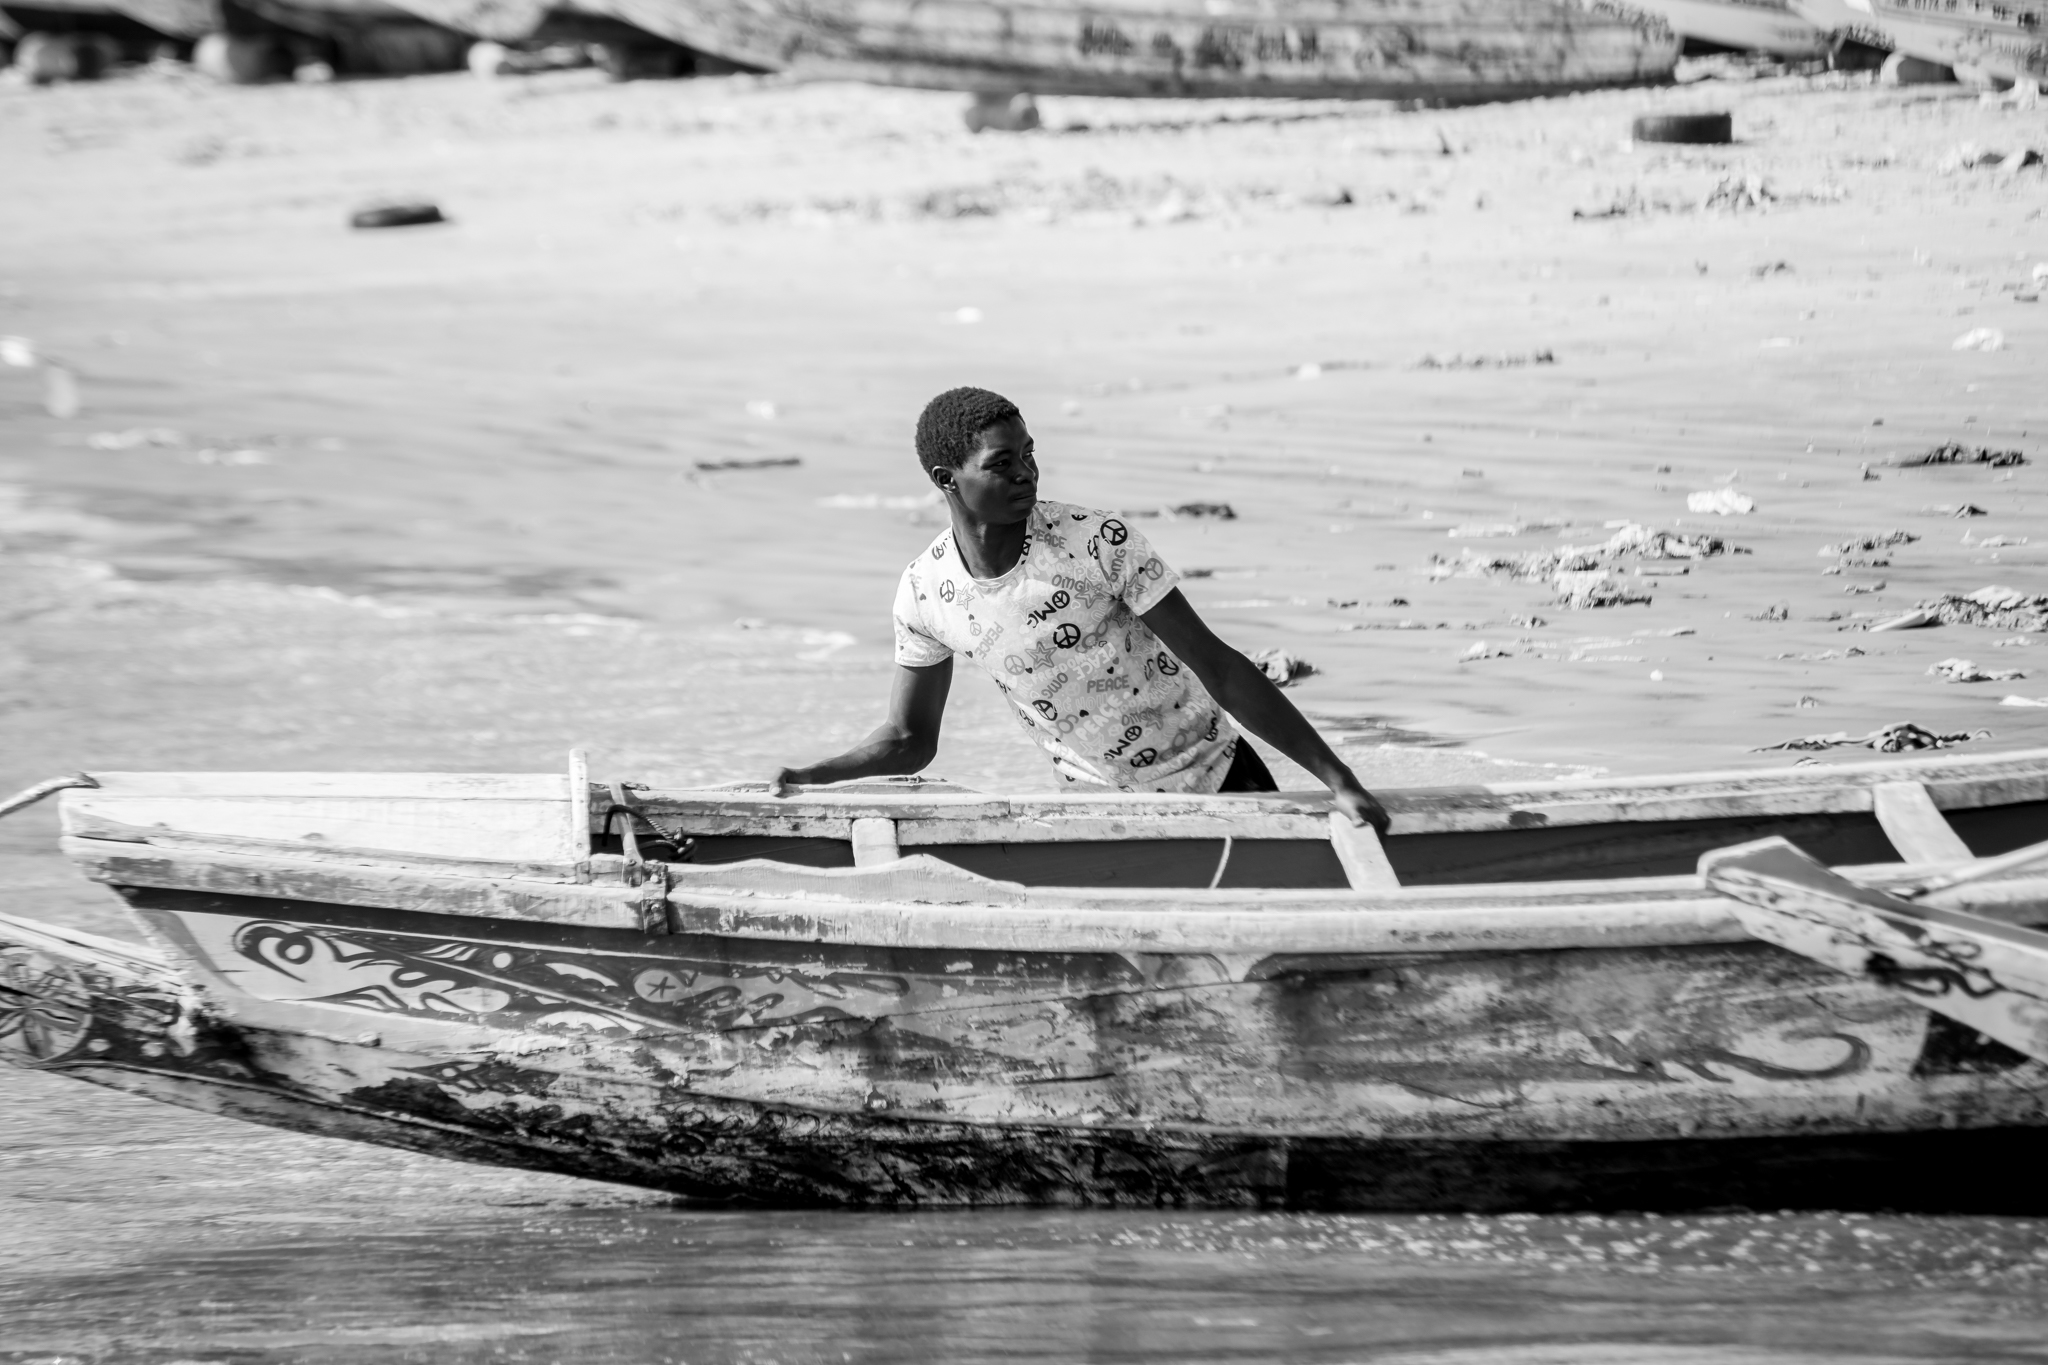 """After the day of captures in front of the Senegalese beaches the fishermen gather with effort their boats or """"canoes"""" to spend the night."""